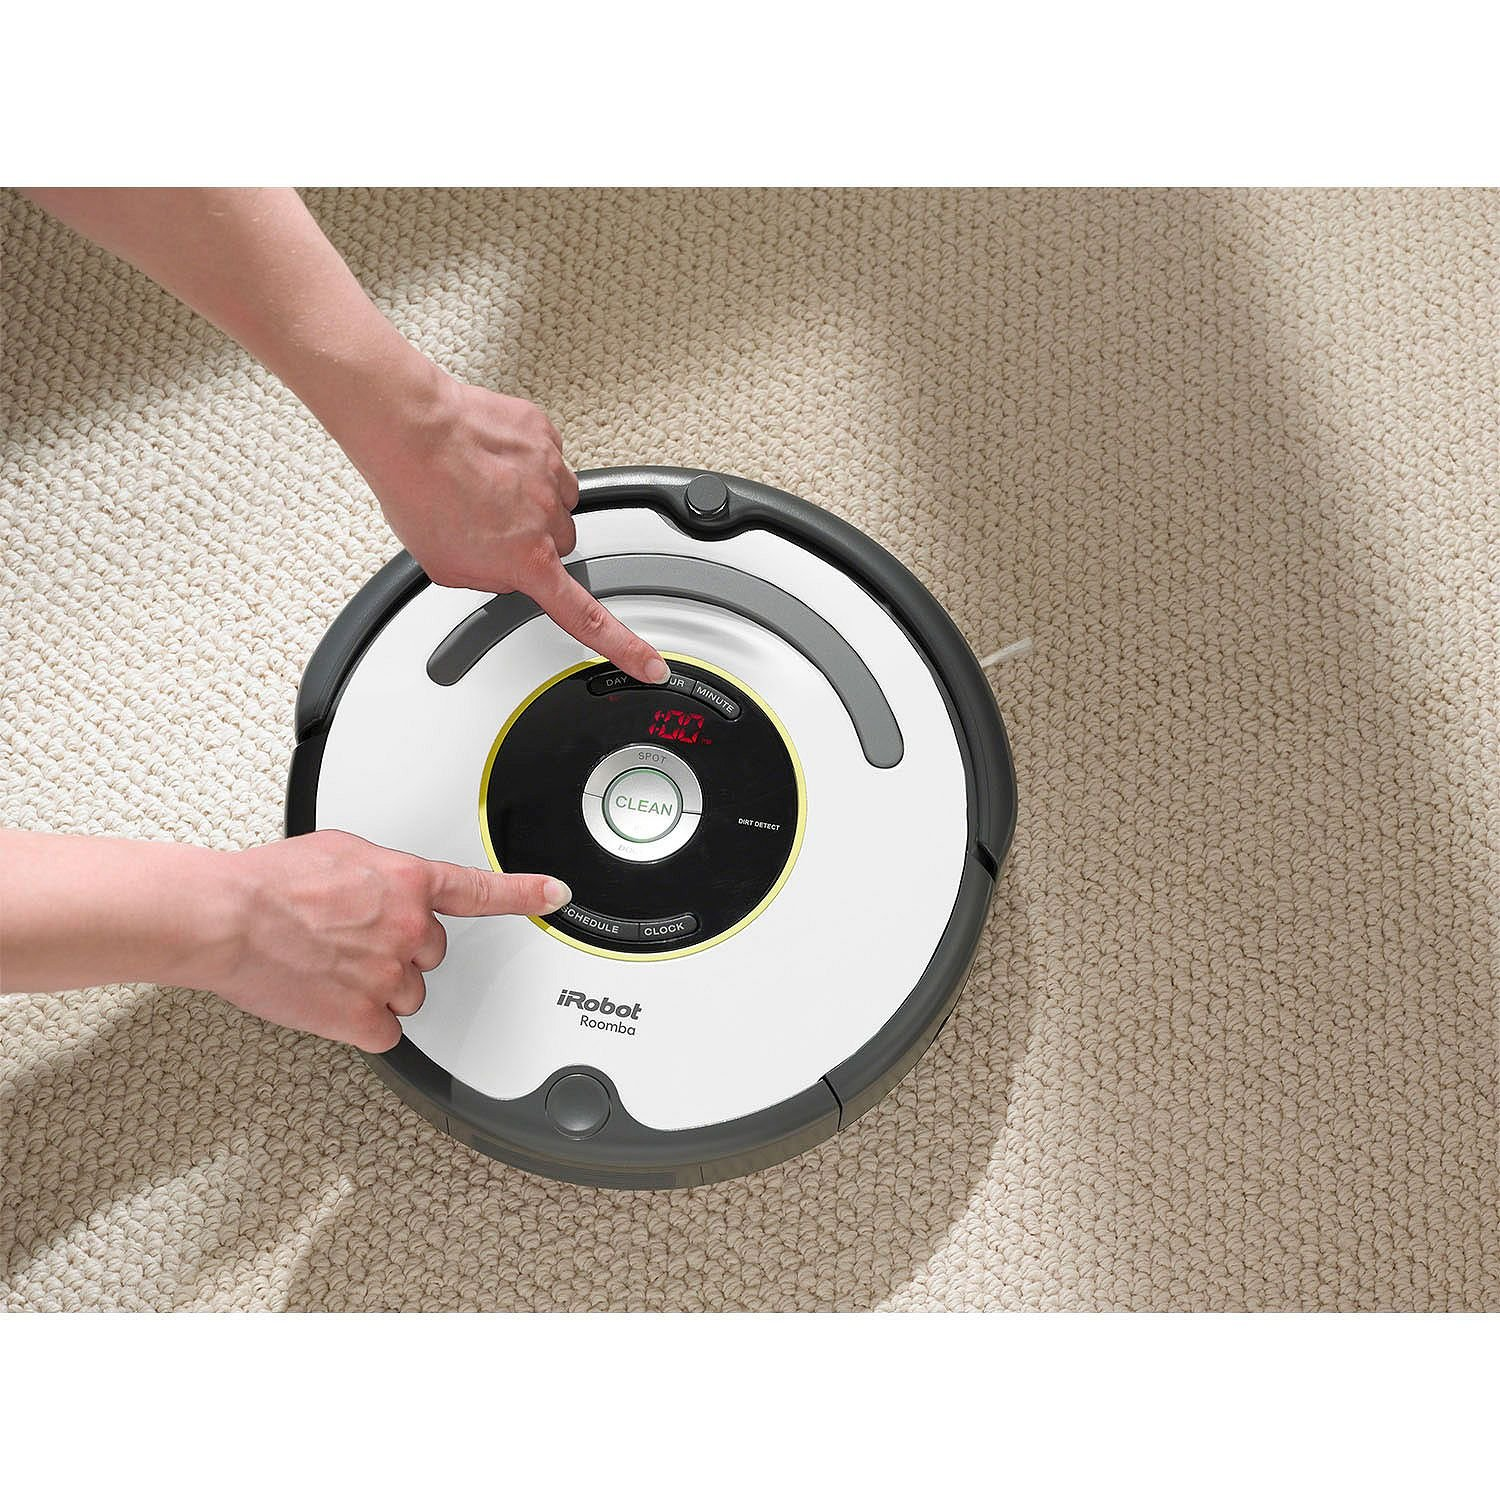 iRobot Roomba 665 Vacuum Cleaning Robot by iRobot